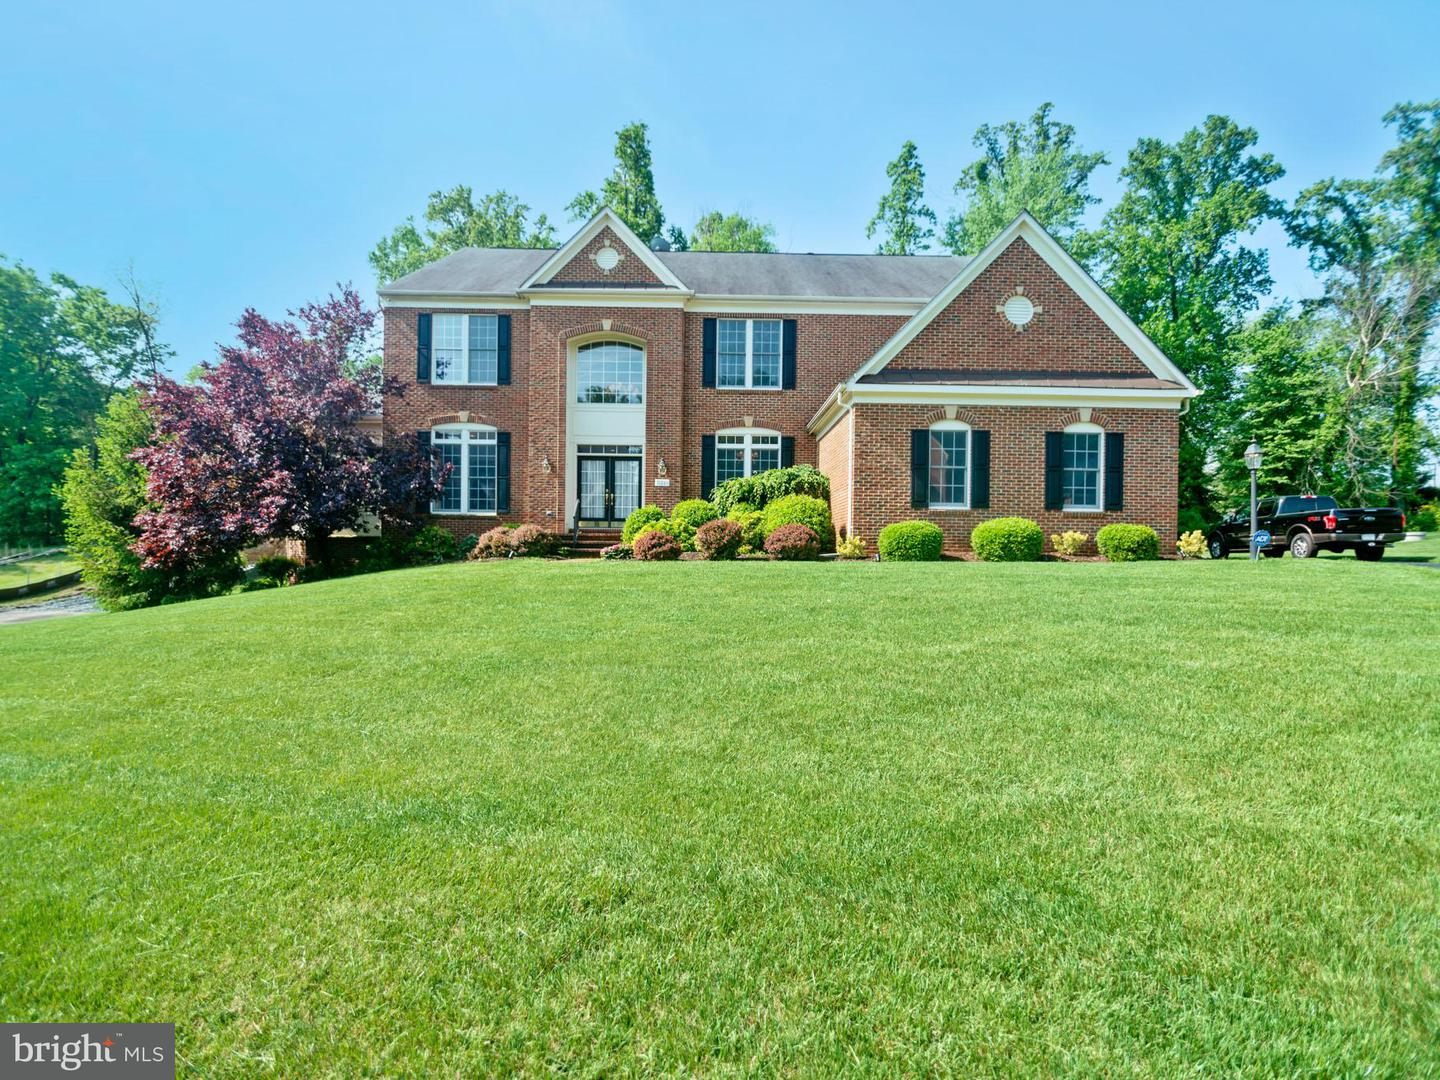 Other Residential for Rent at 11263 Derosnec Dr Oakton, Virginia 22124 United States